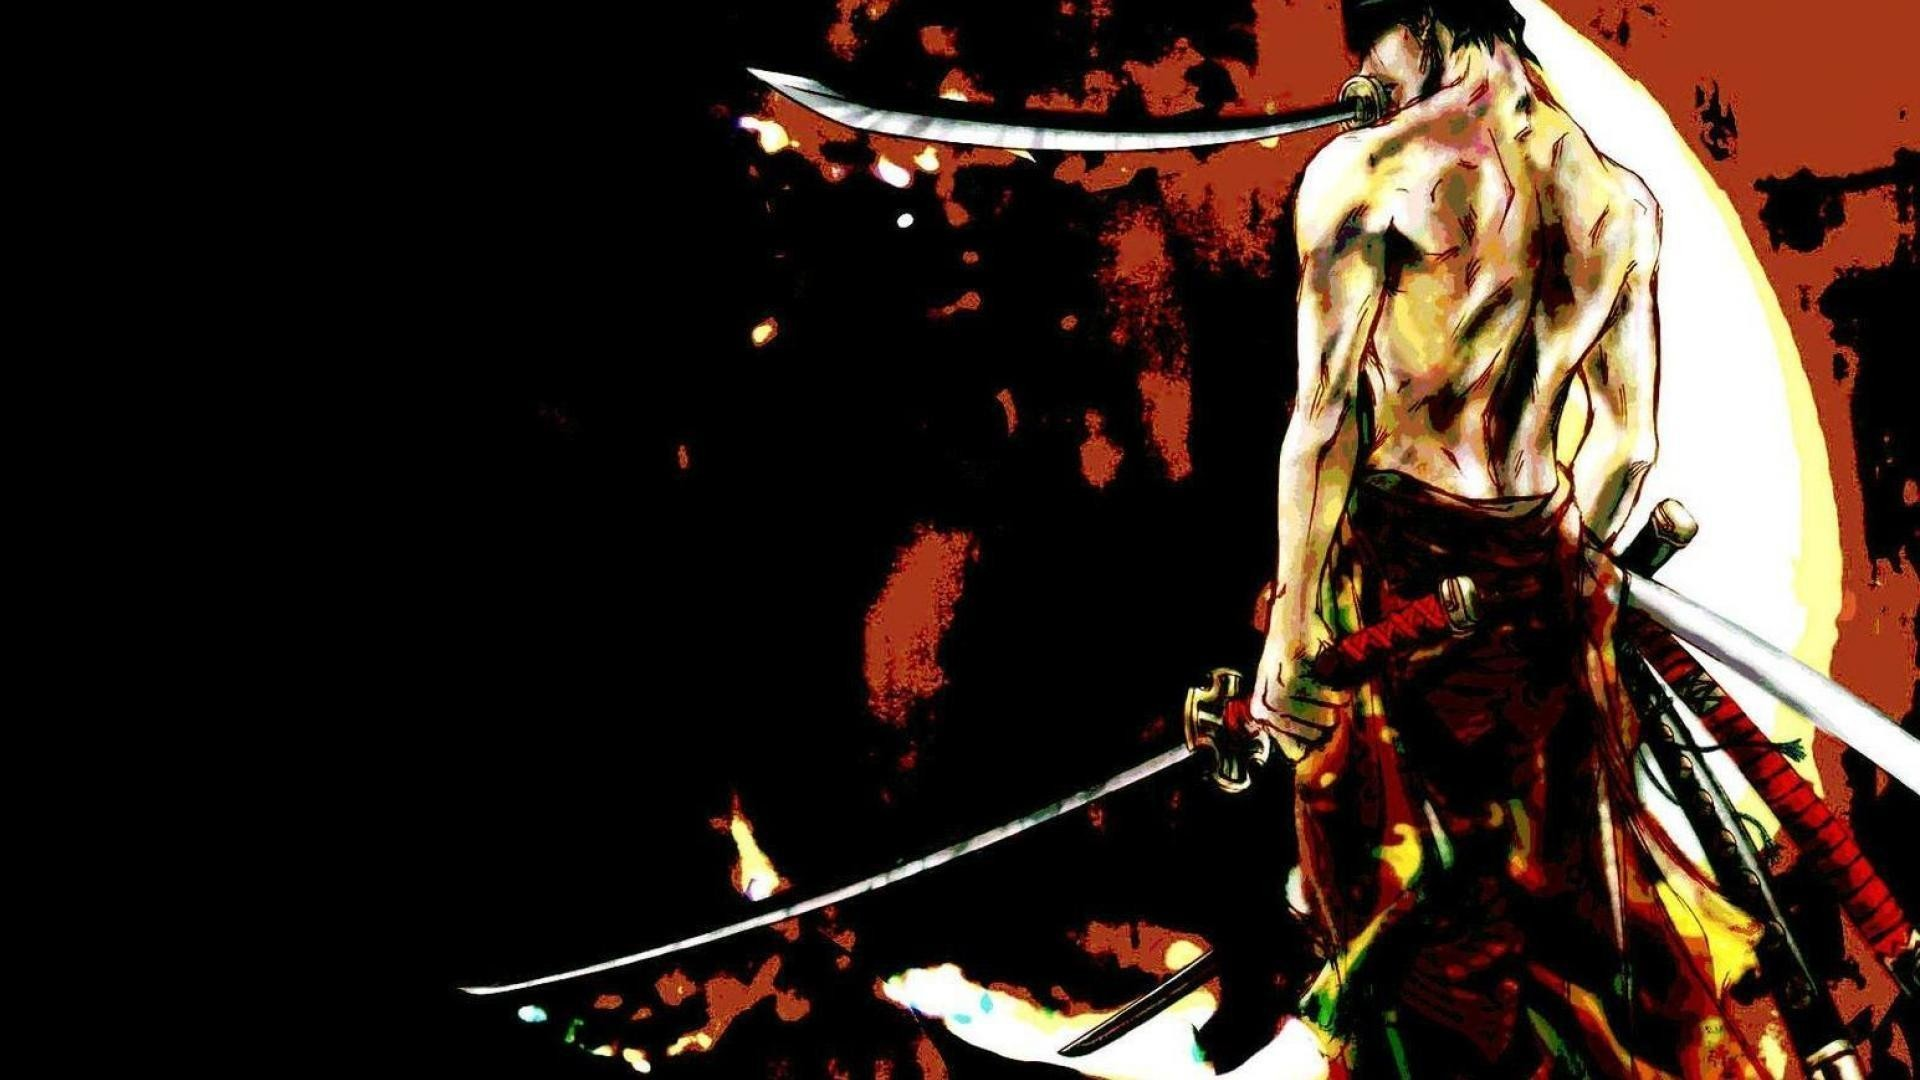 Res: 1920x1080,  Images For > One Piece Wallpaper Zoro